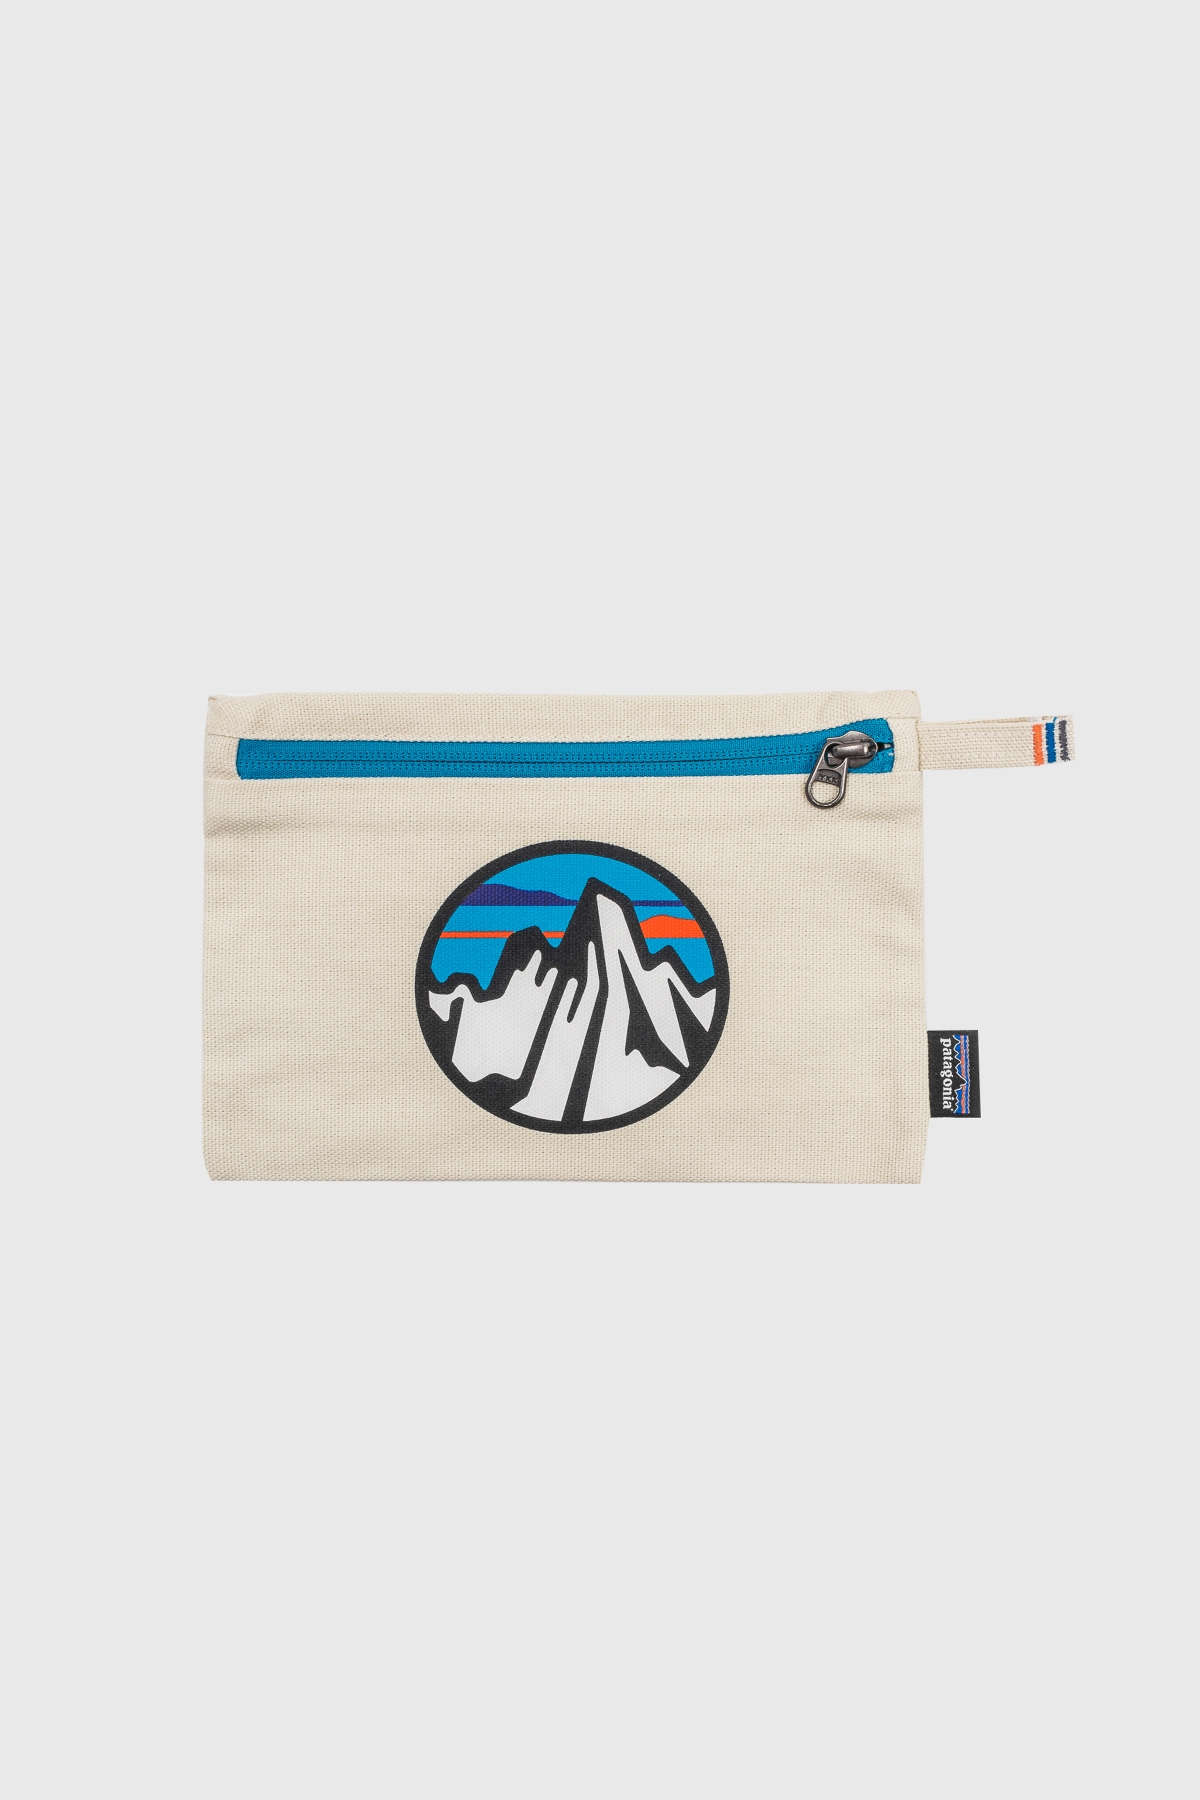 Patagonia - Zippered Pouch - white